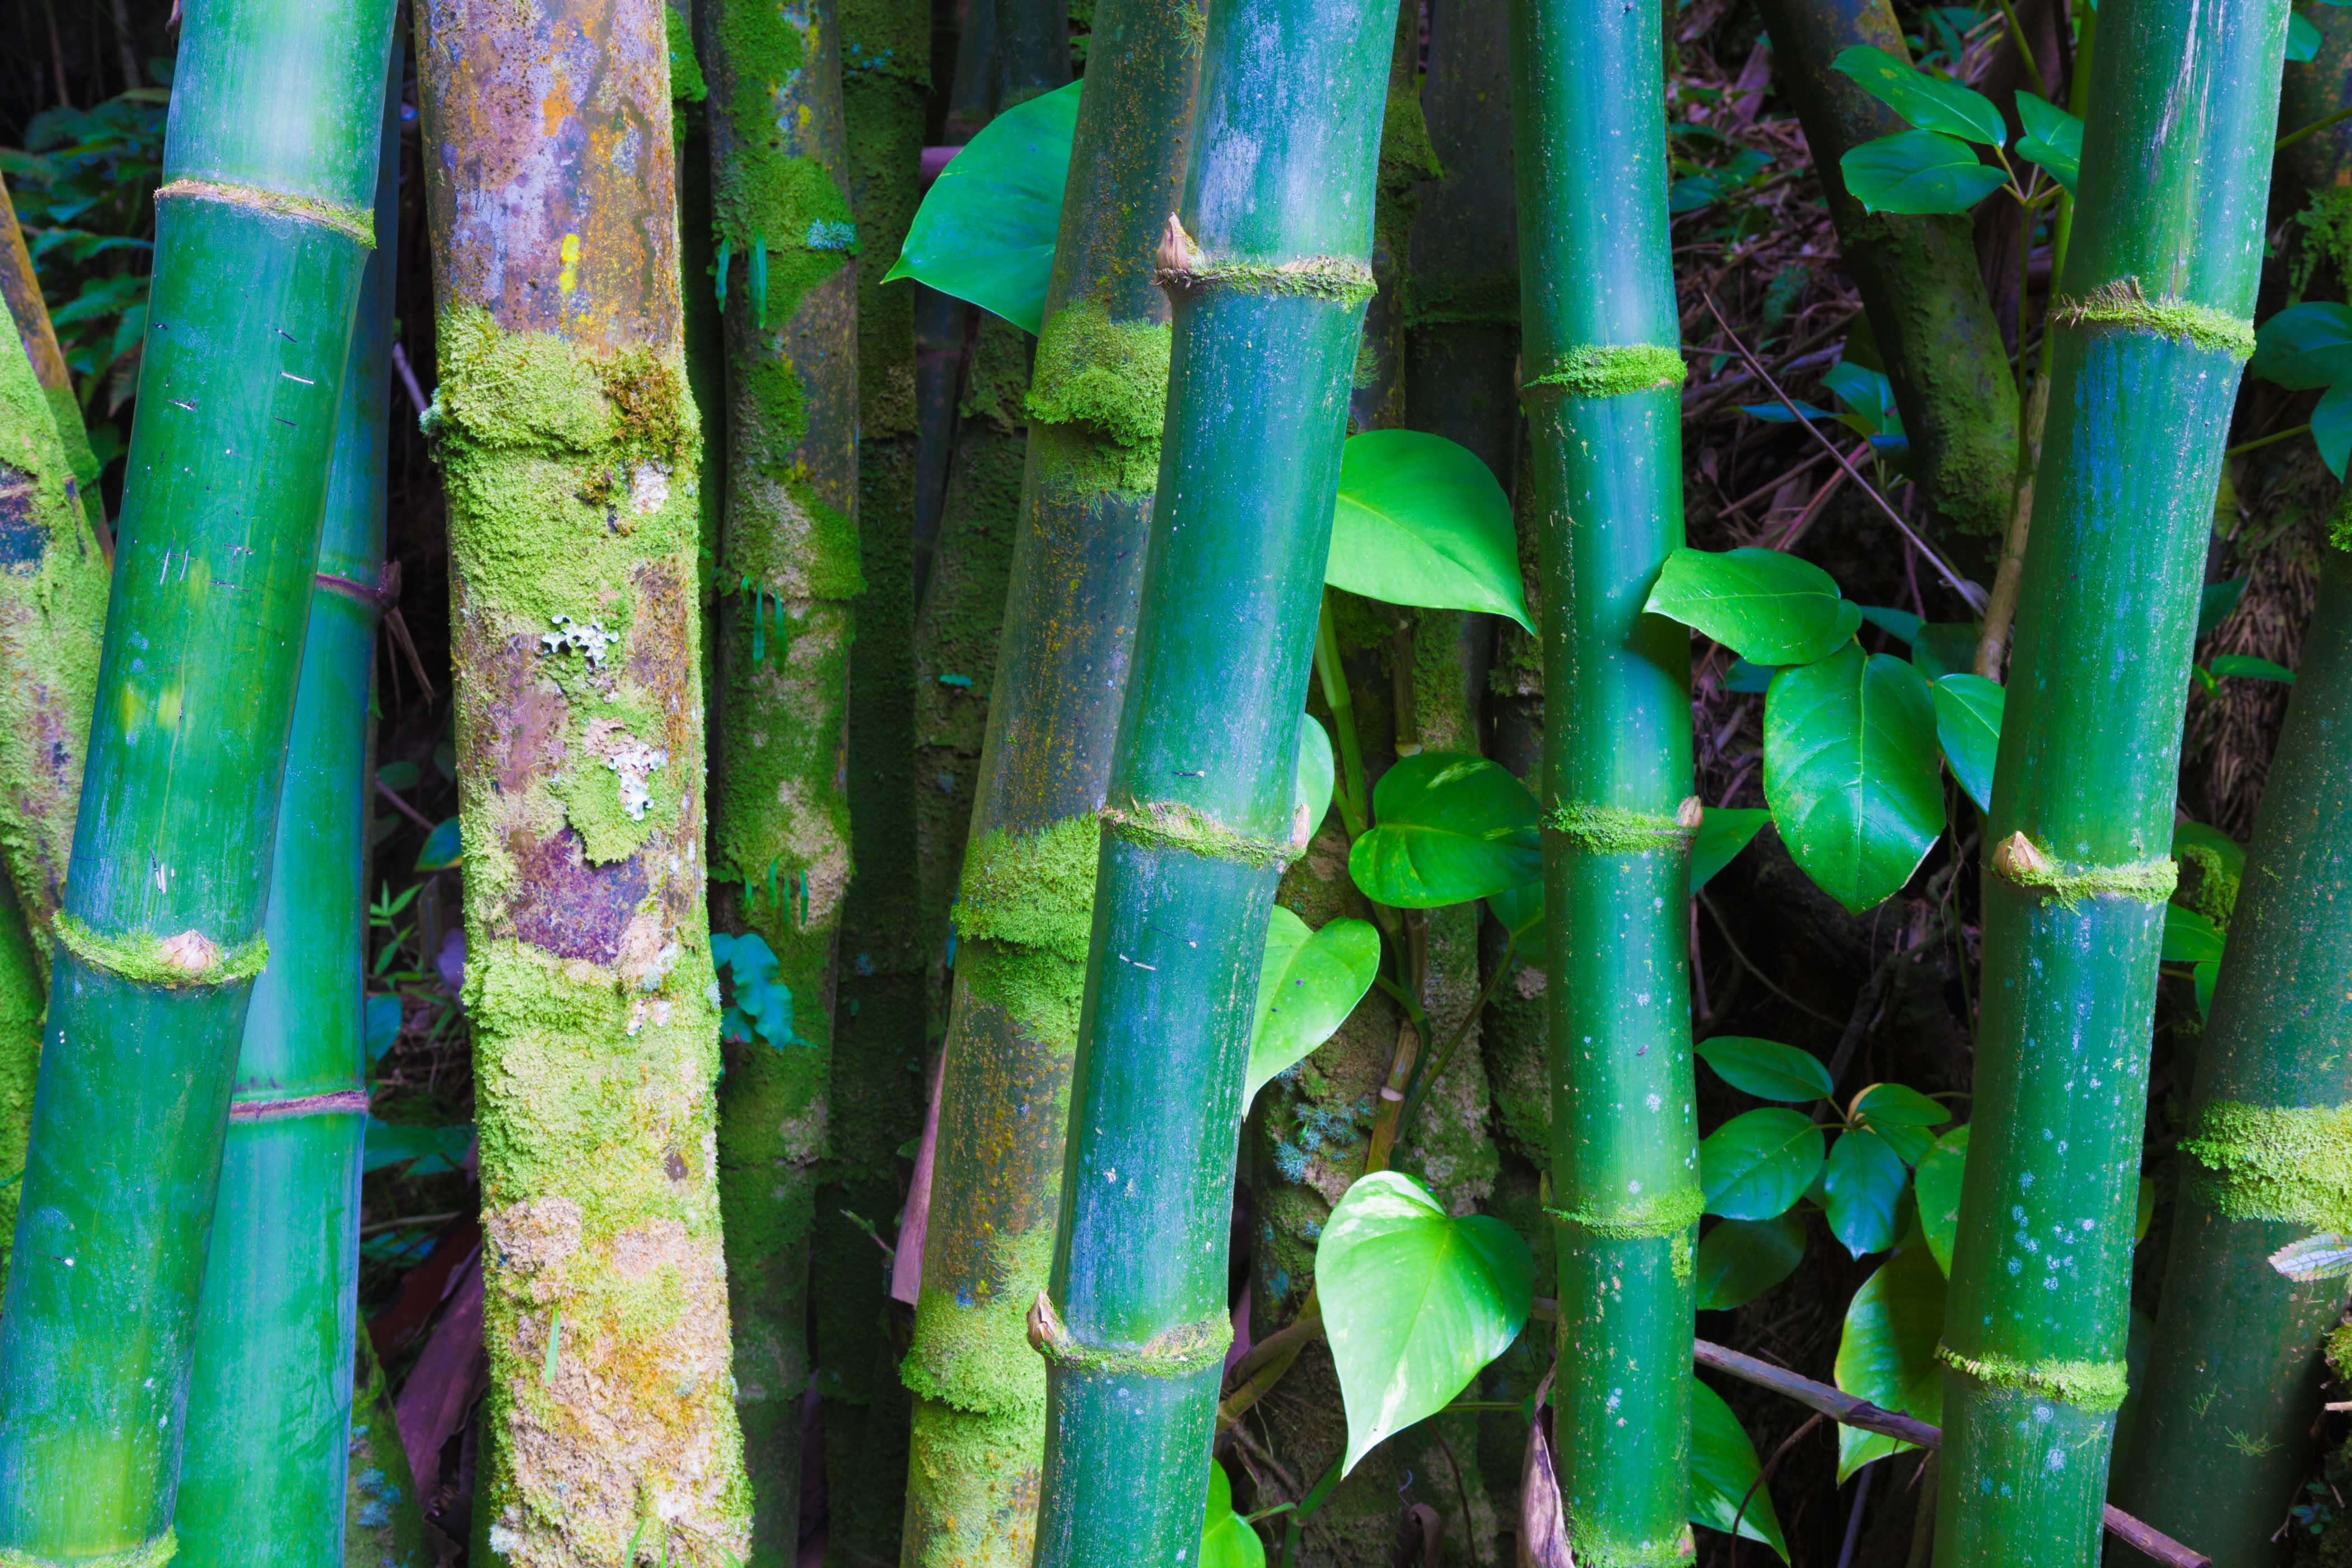 Bamboo forest in Hawaii